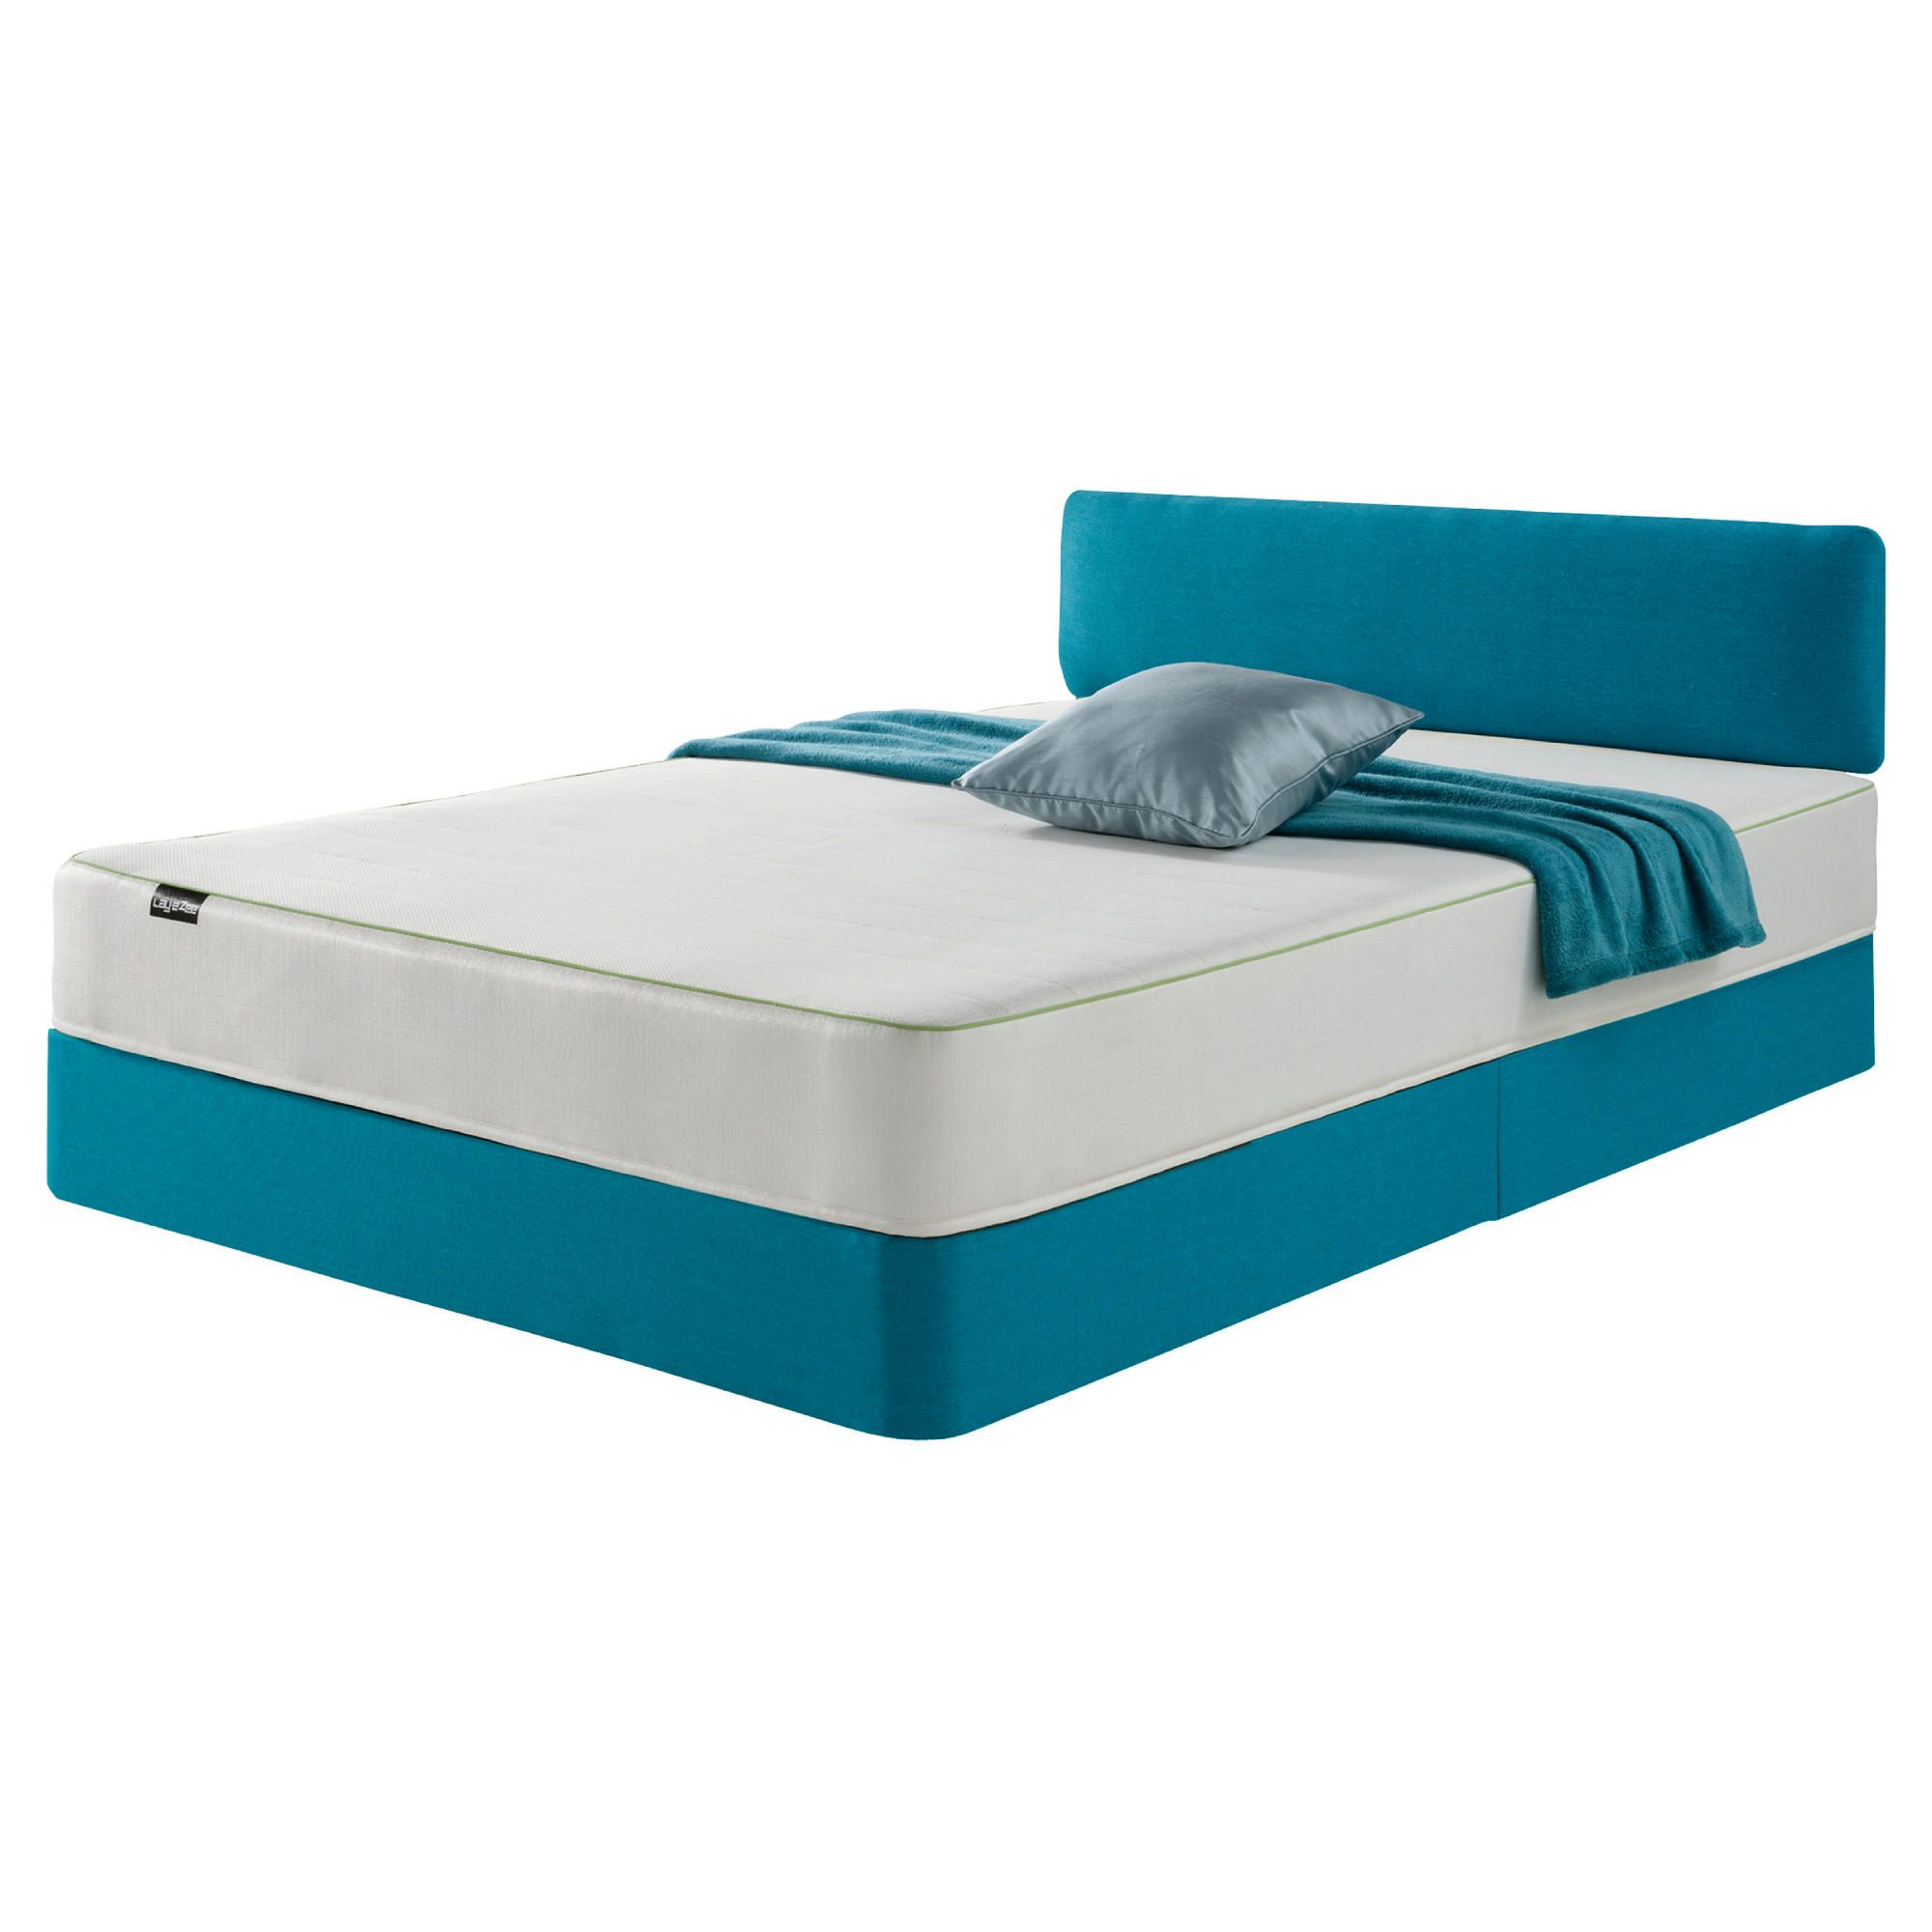 Layezee Teal Bed and Headboard Memory Mattress King at Tesco Direct